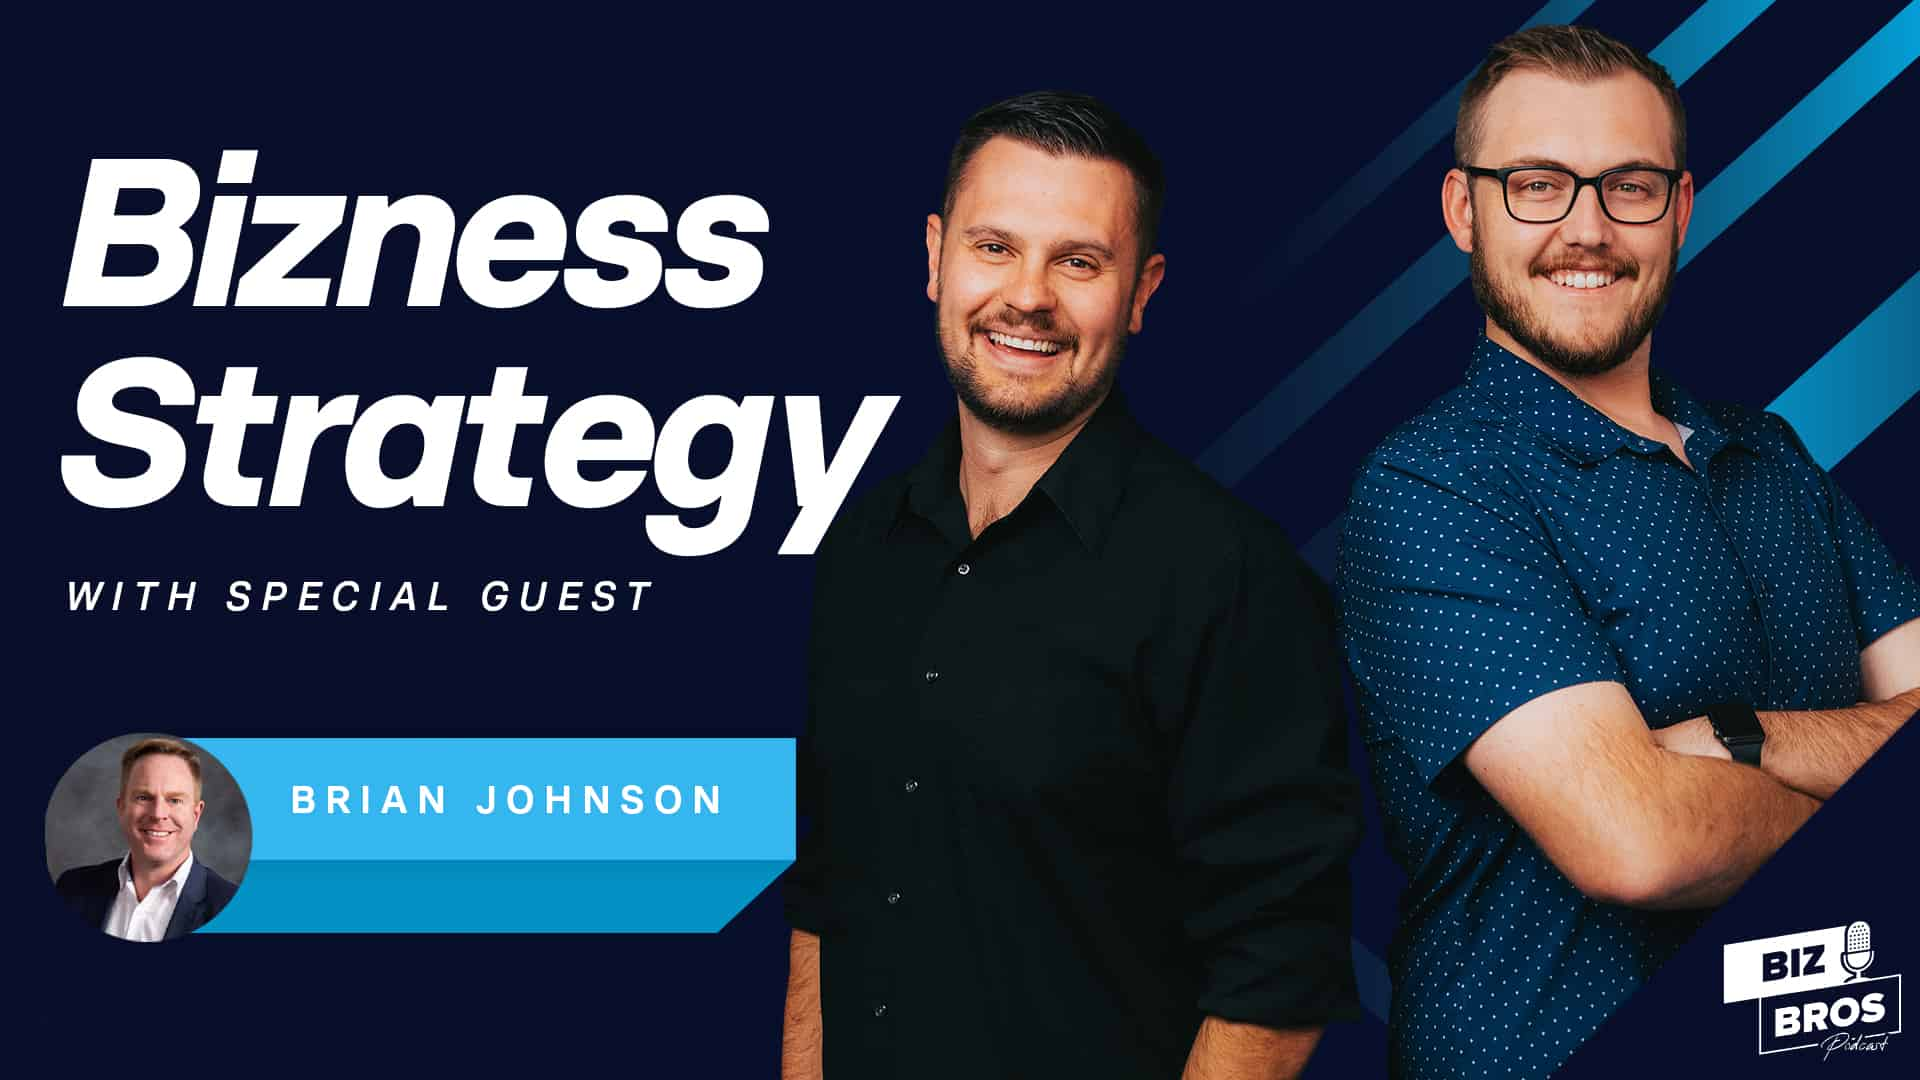 The Airplane Analogy To Business with Brian Johnson